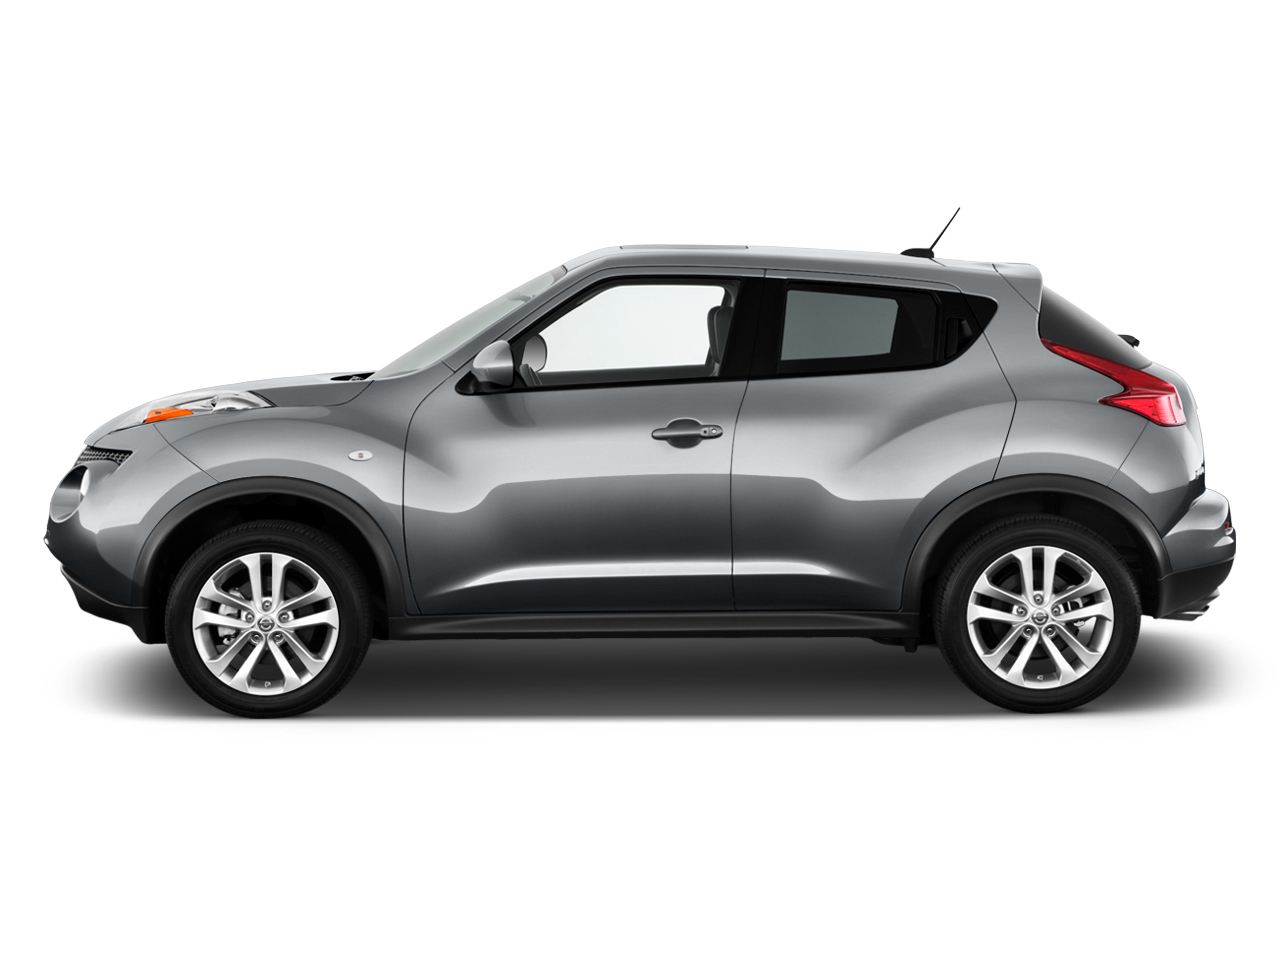 2011 nissan juke review ratings specs prices and photos the car connection. Black Bedroom Furniture Sets. Home Design Ideas